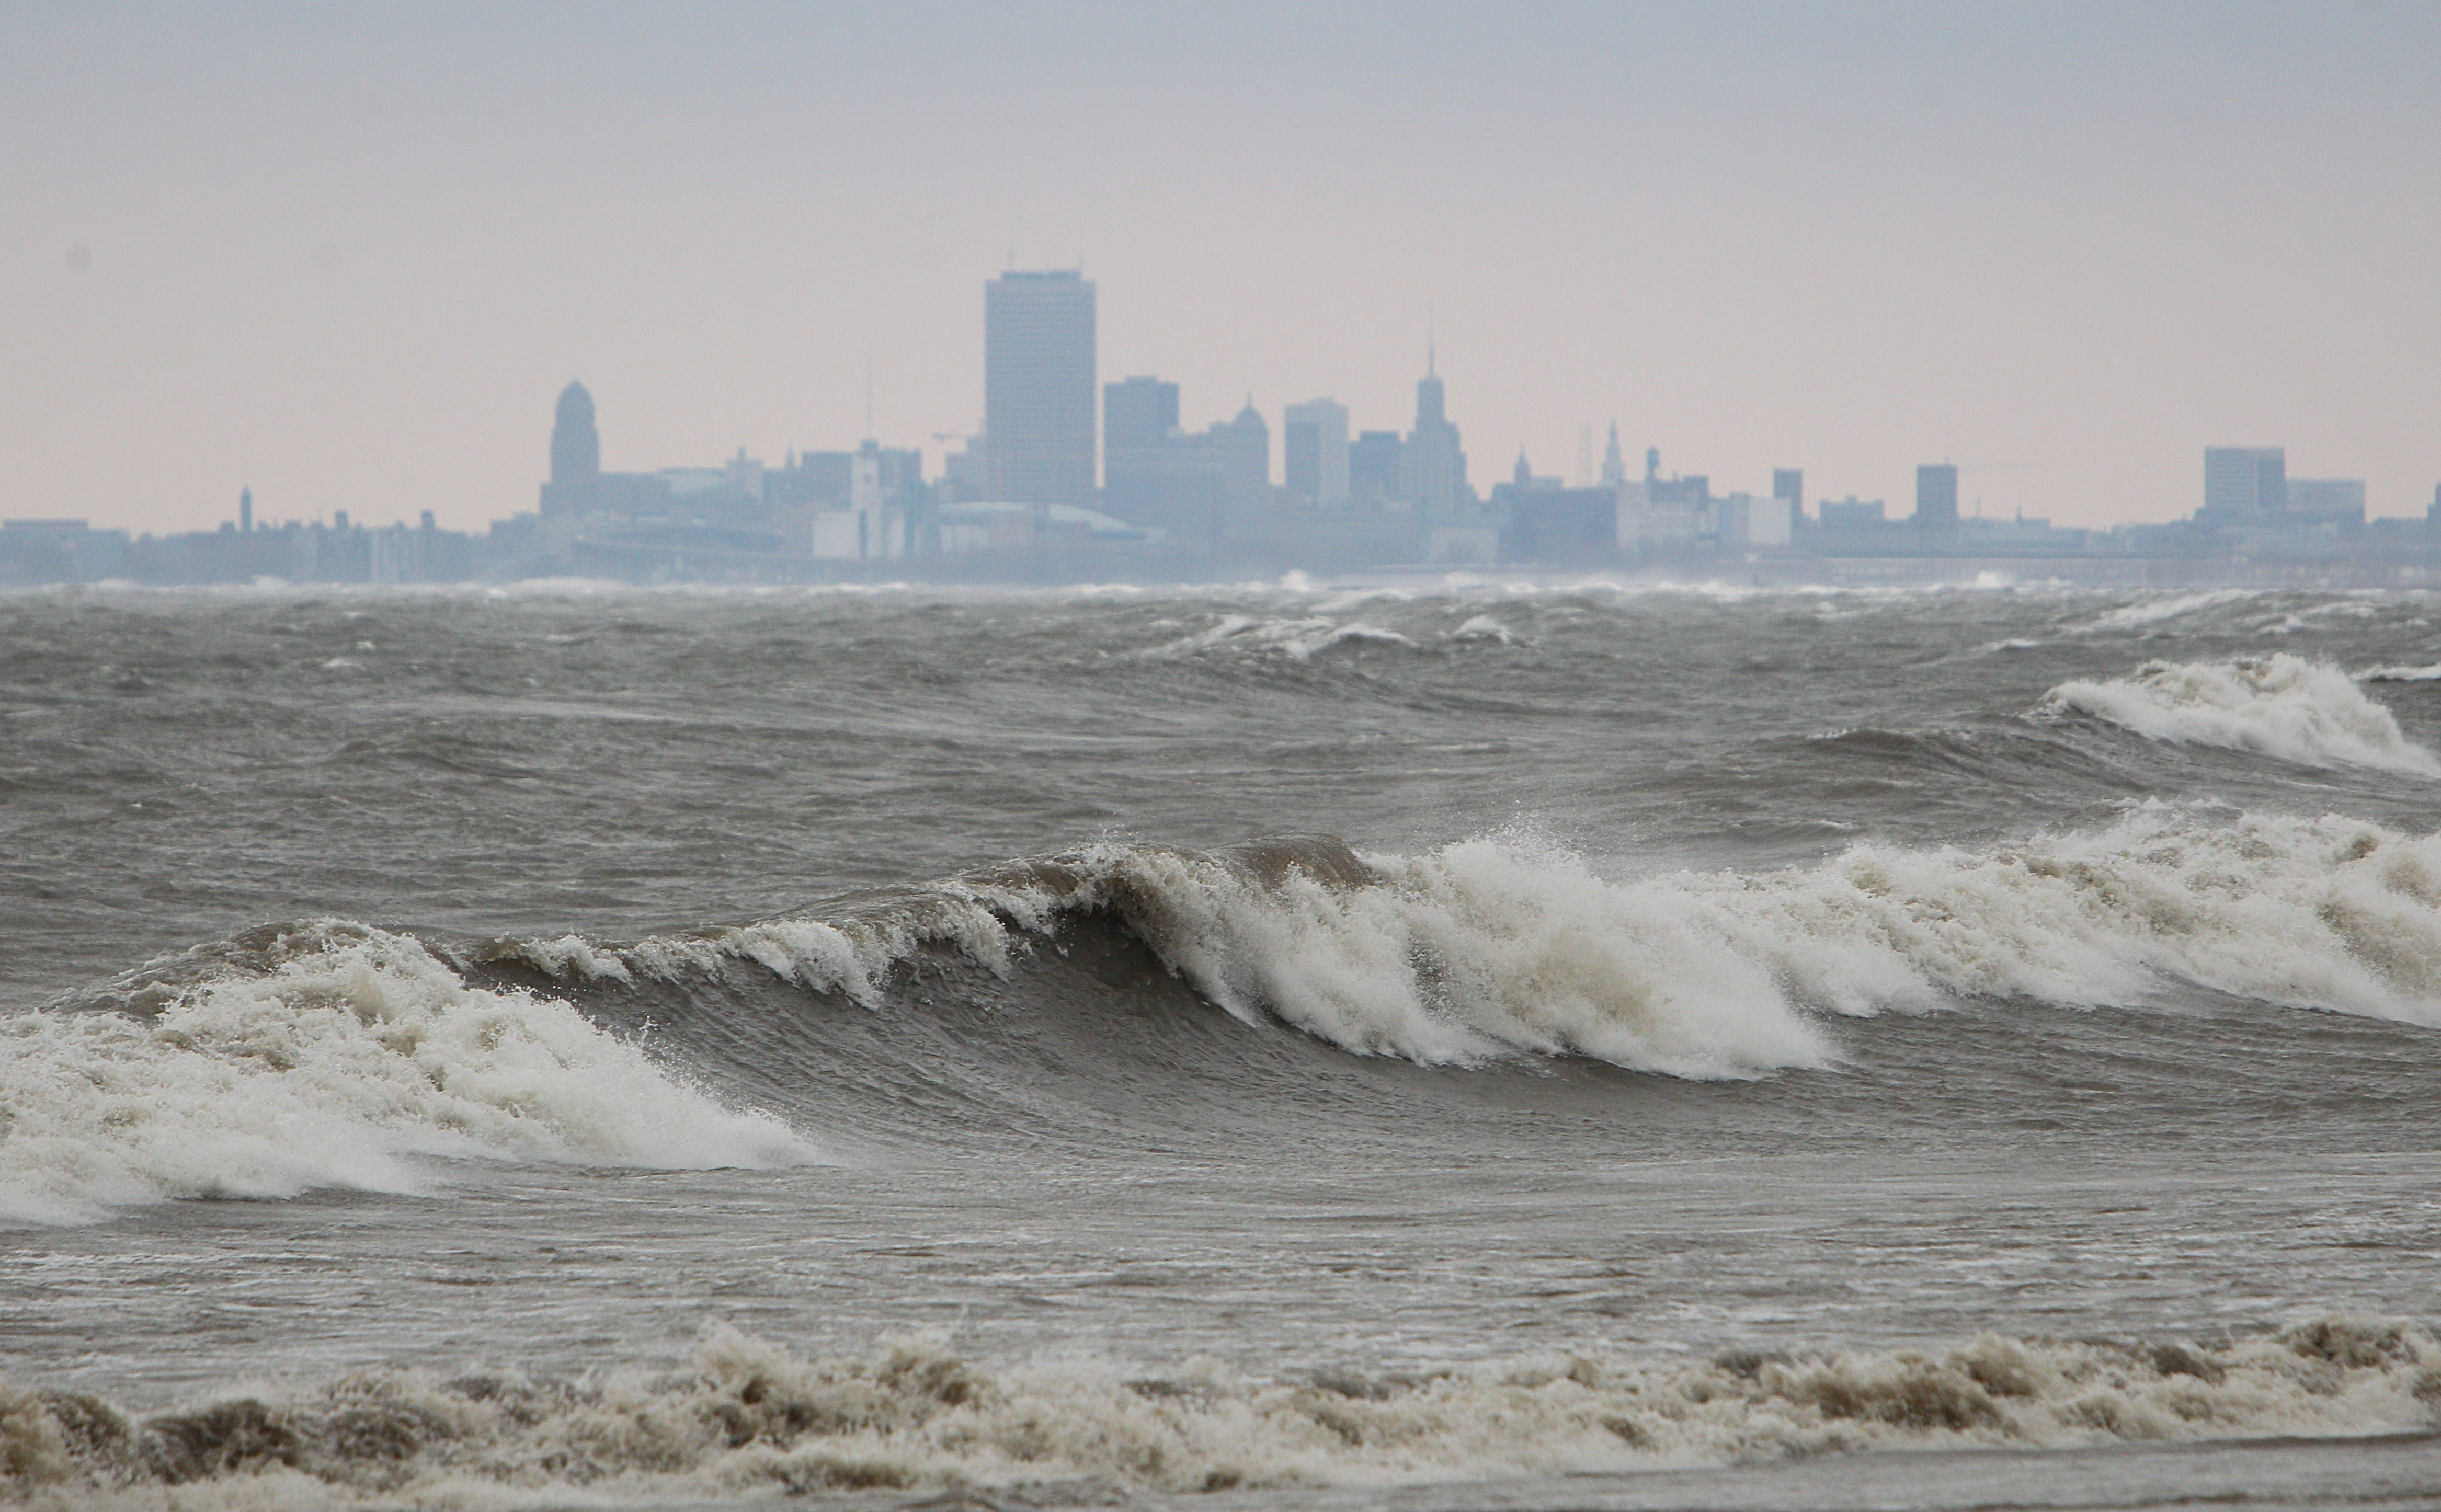 Lake Erie's water level in October was 10 inches higher than the previous October, recovering from a historic dropoff in 2012.